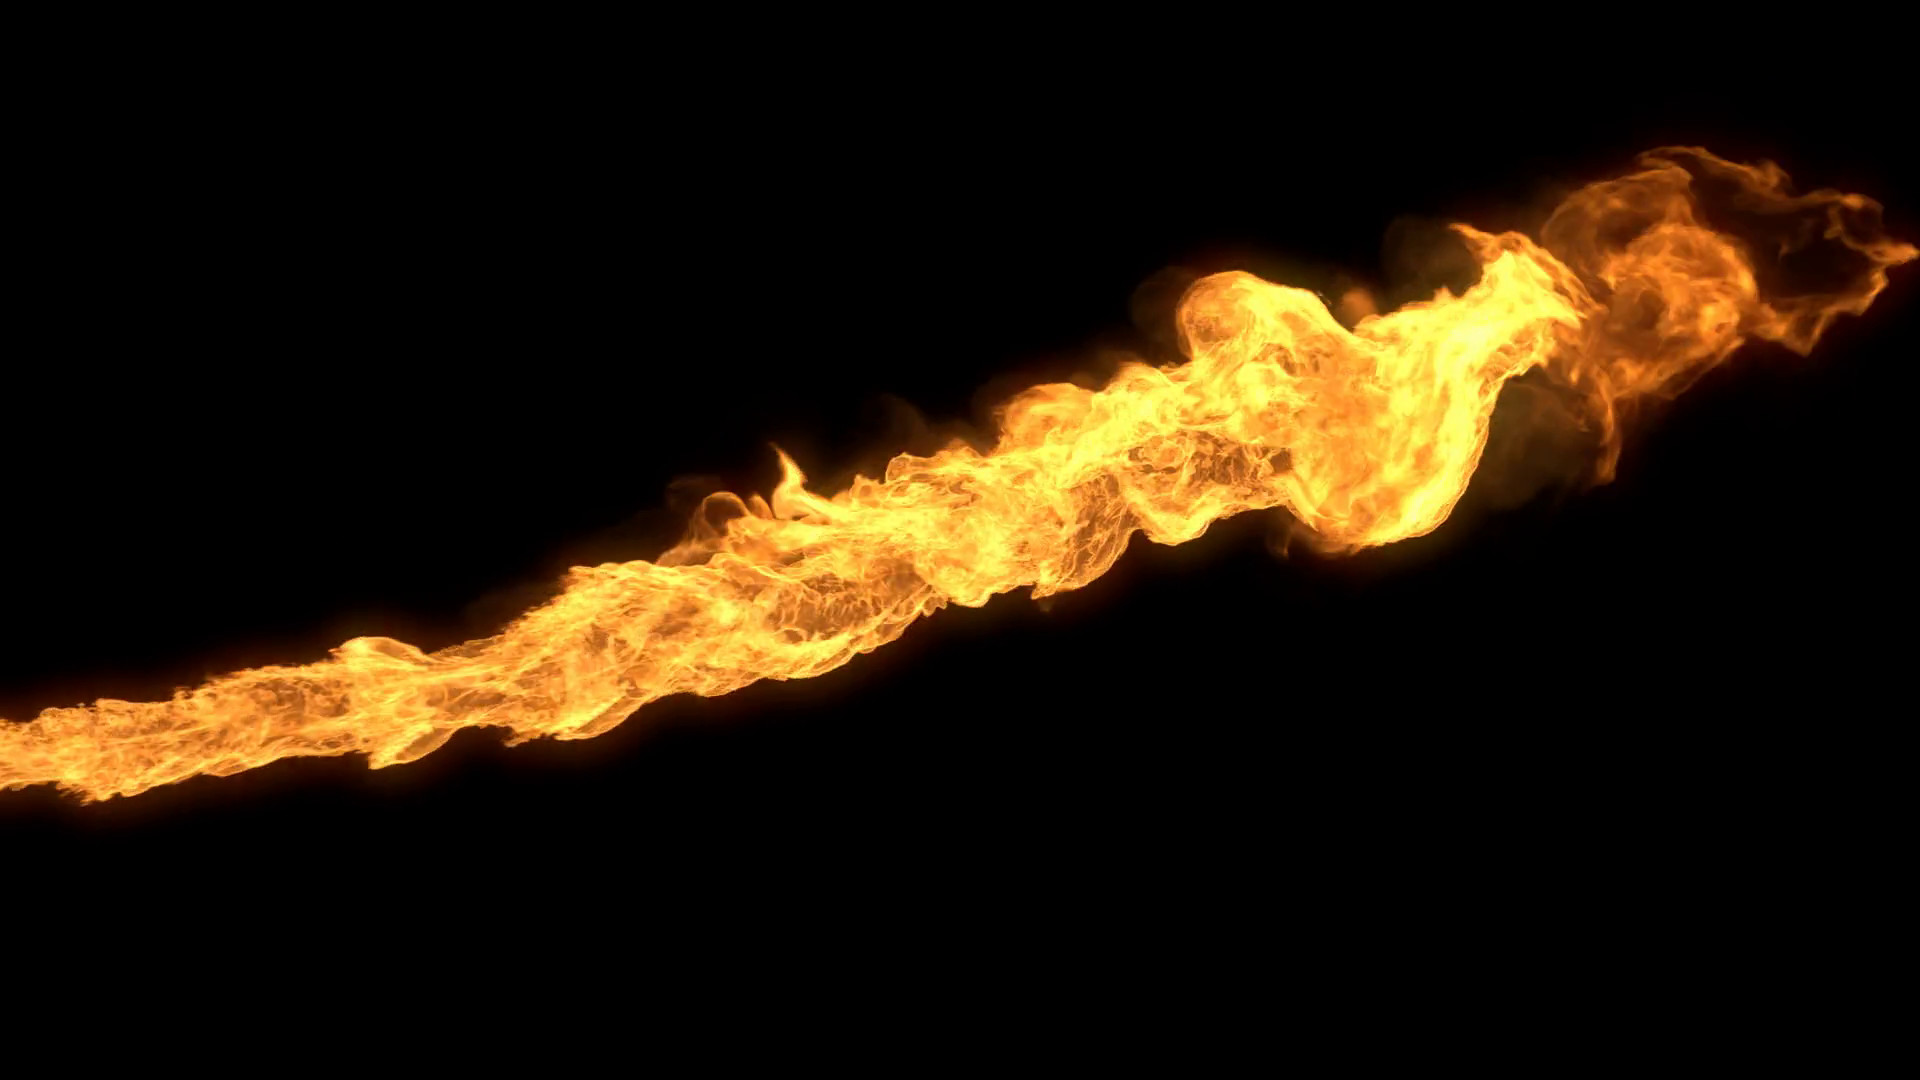 Flaming Soccer Ball Wallpaper (55+ images)Fire Flames Dragon